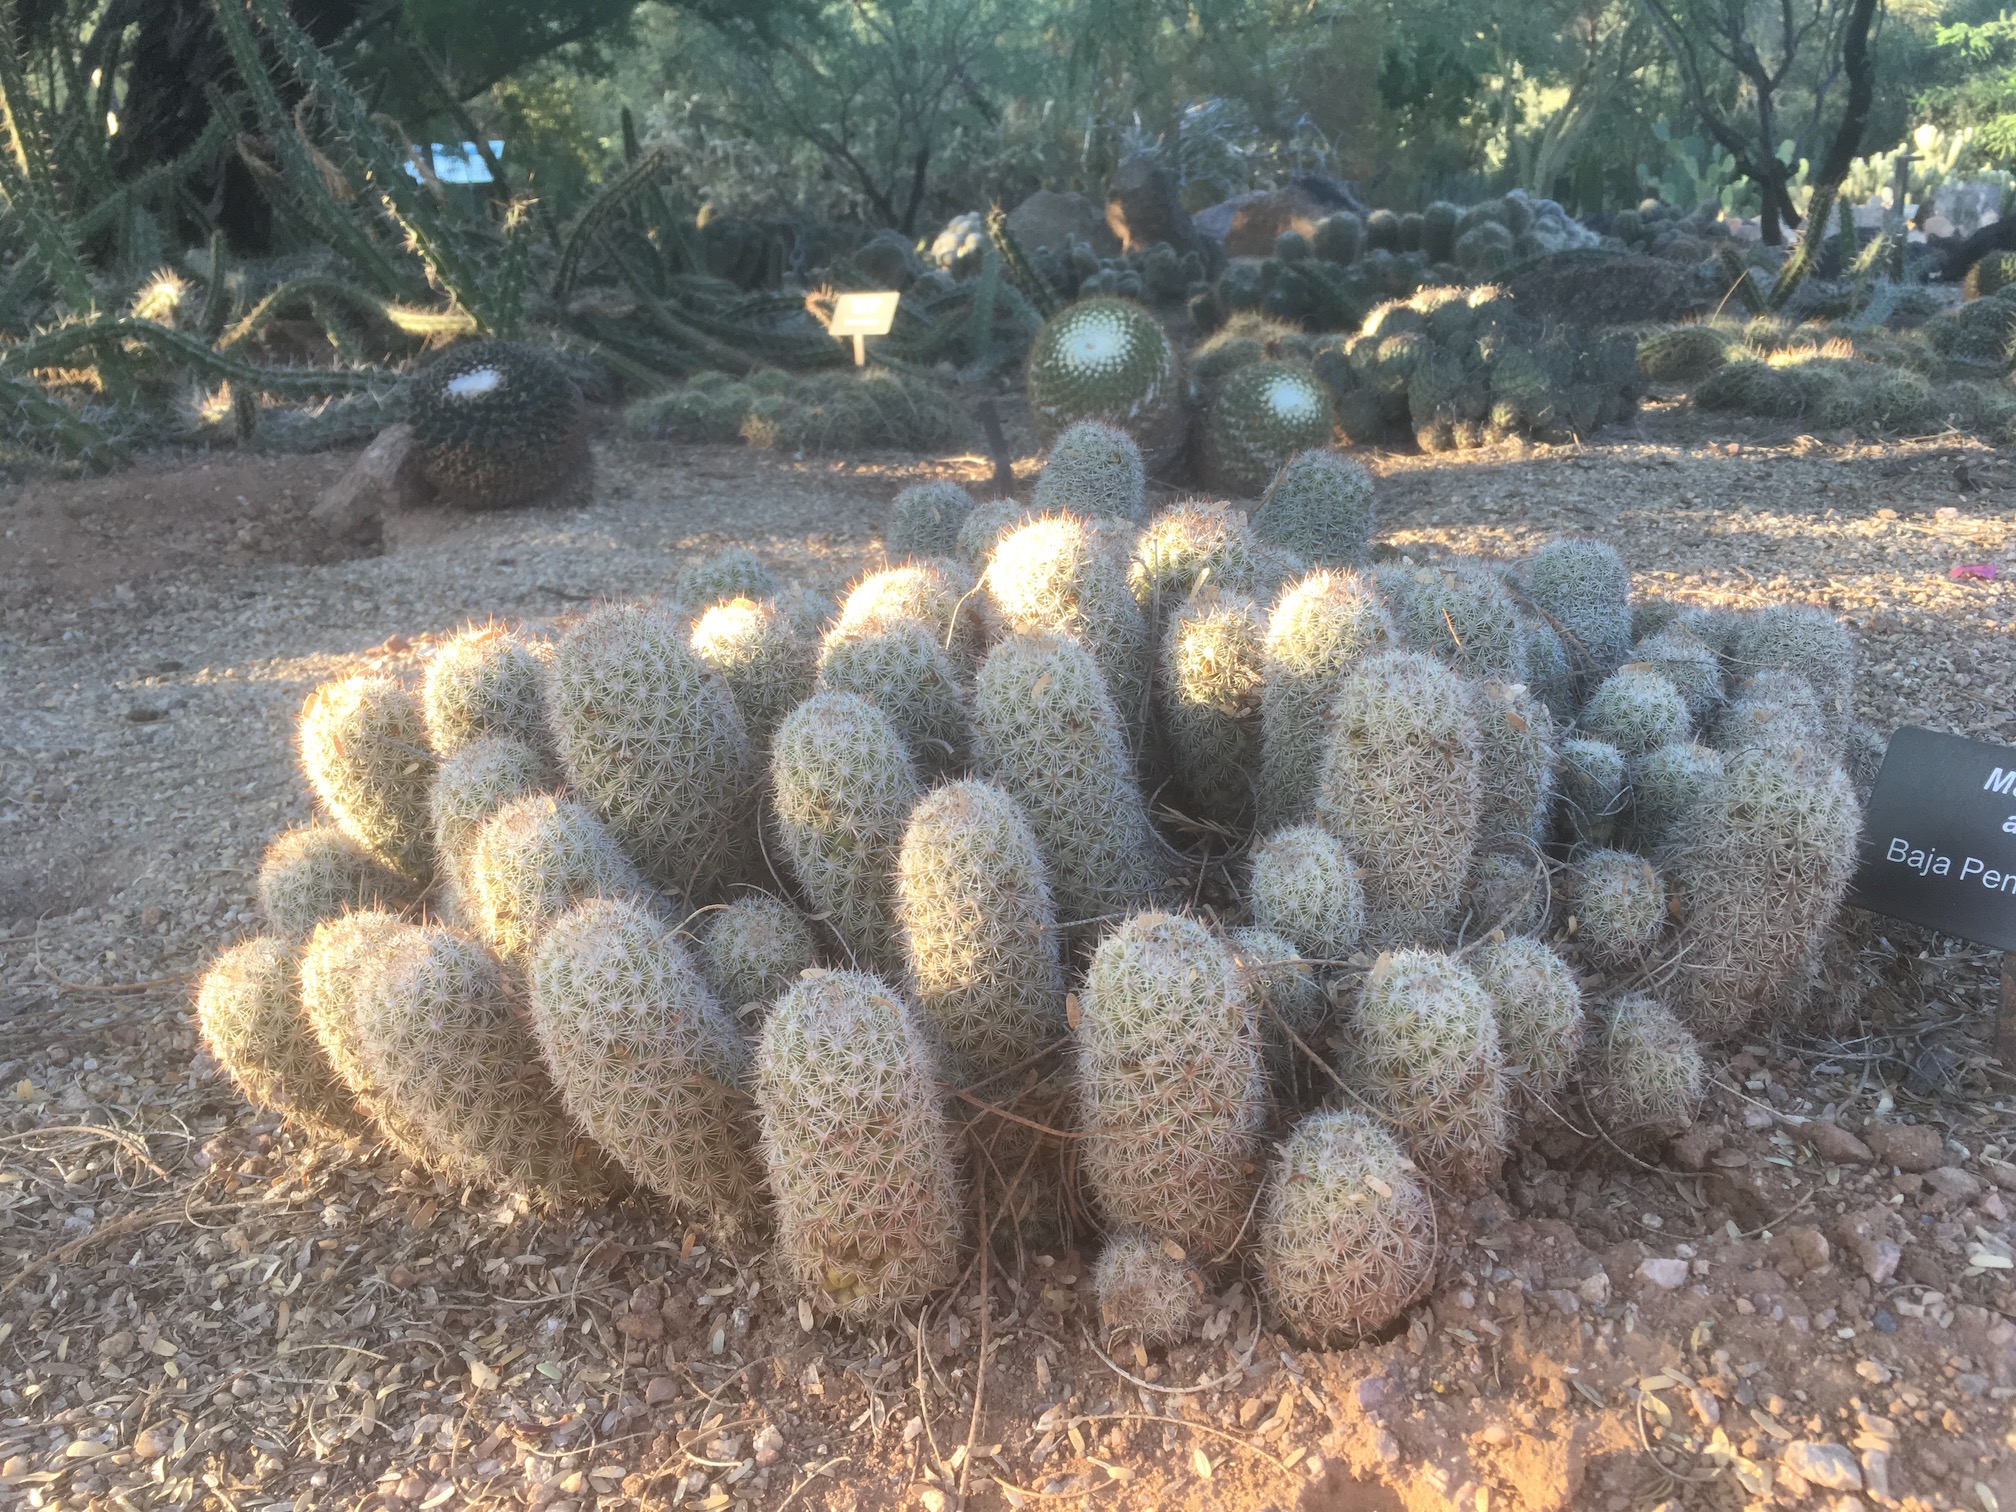 Eggs-like Cactus